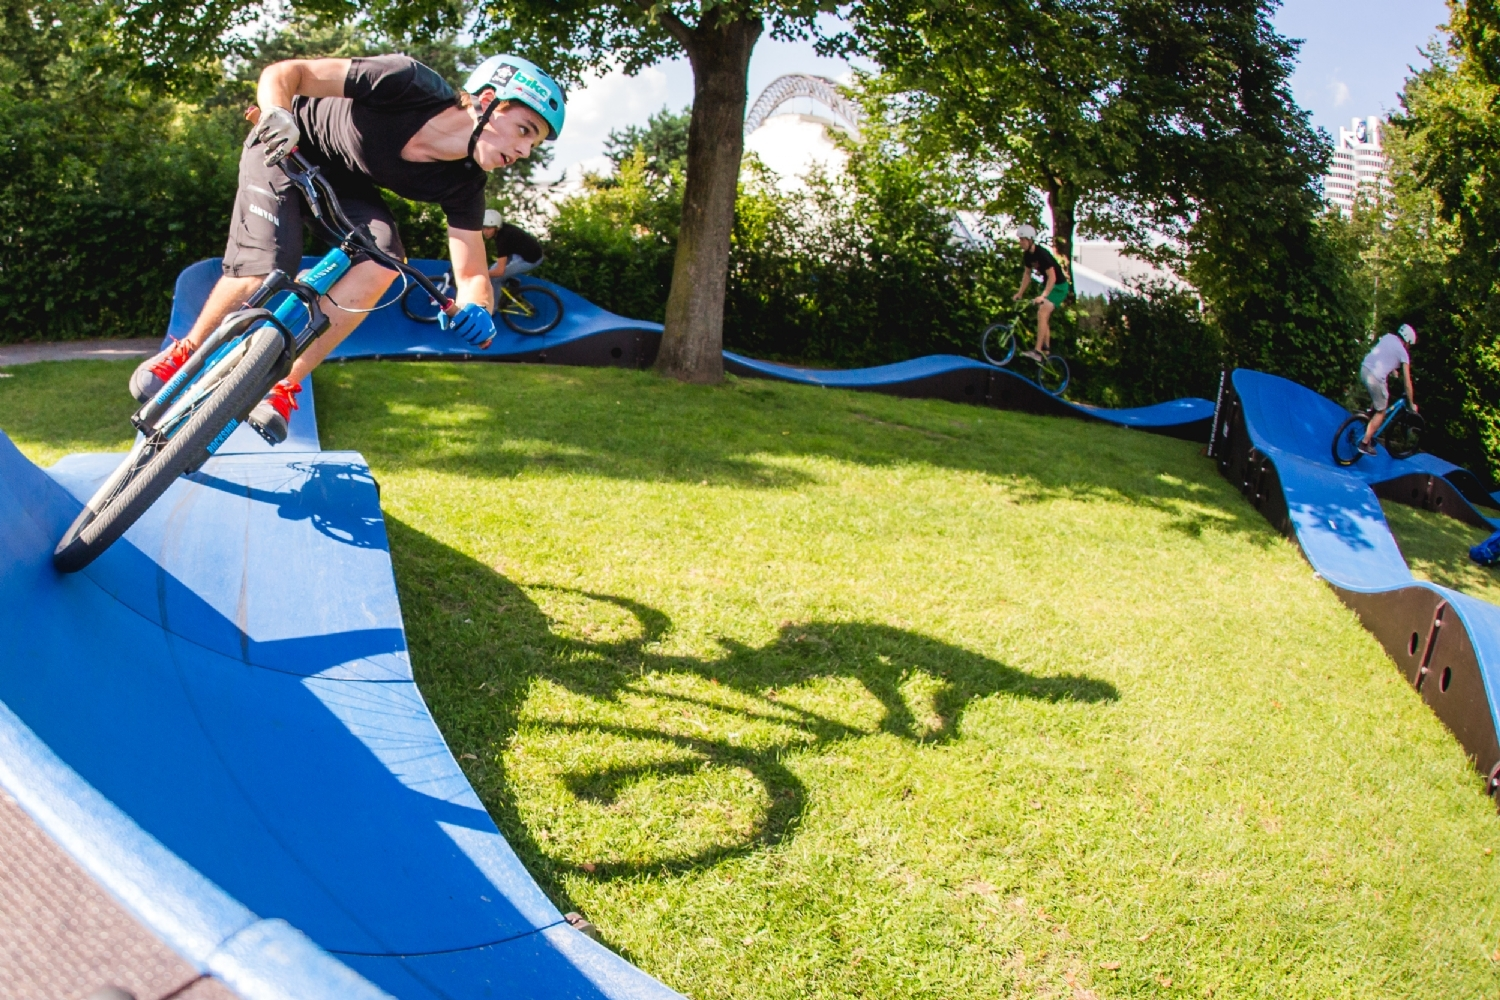 Pumptrack in Schwetzingen